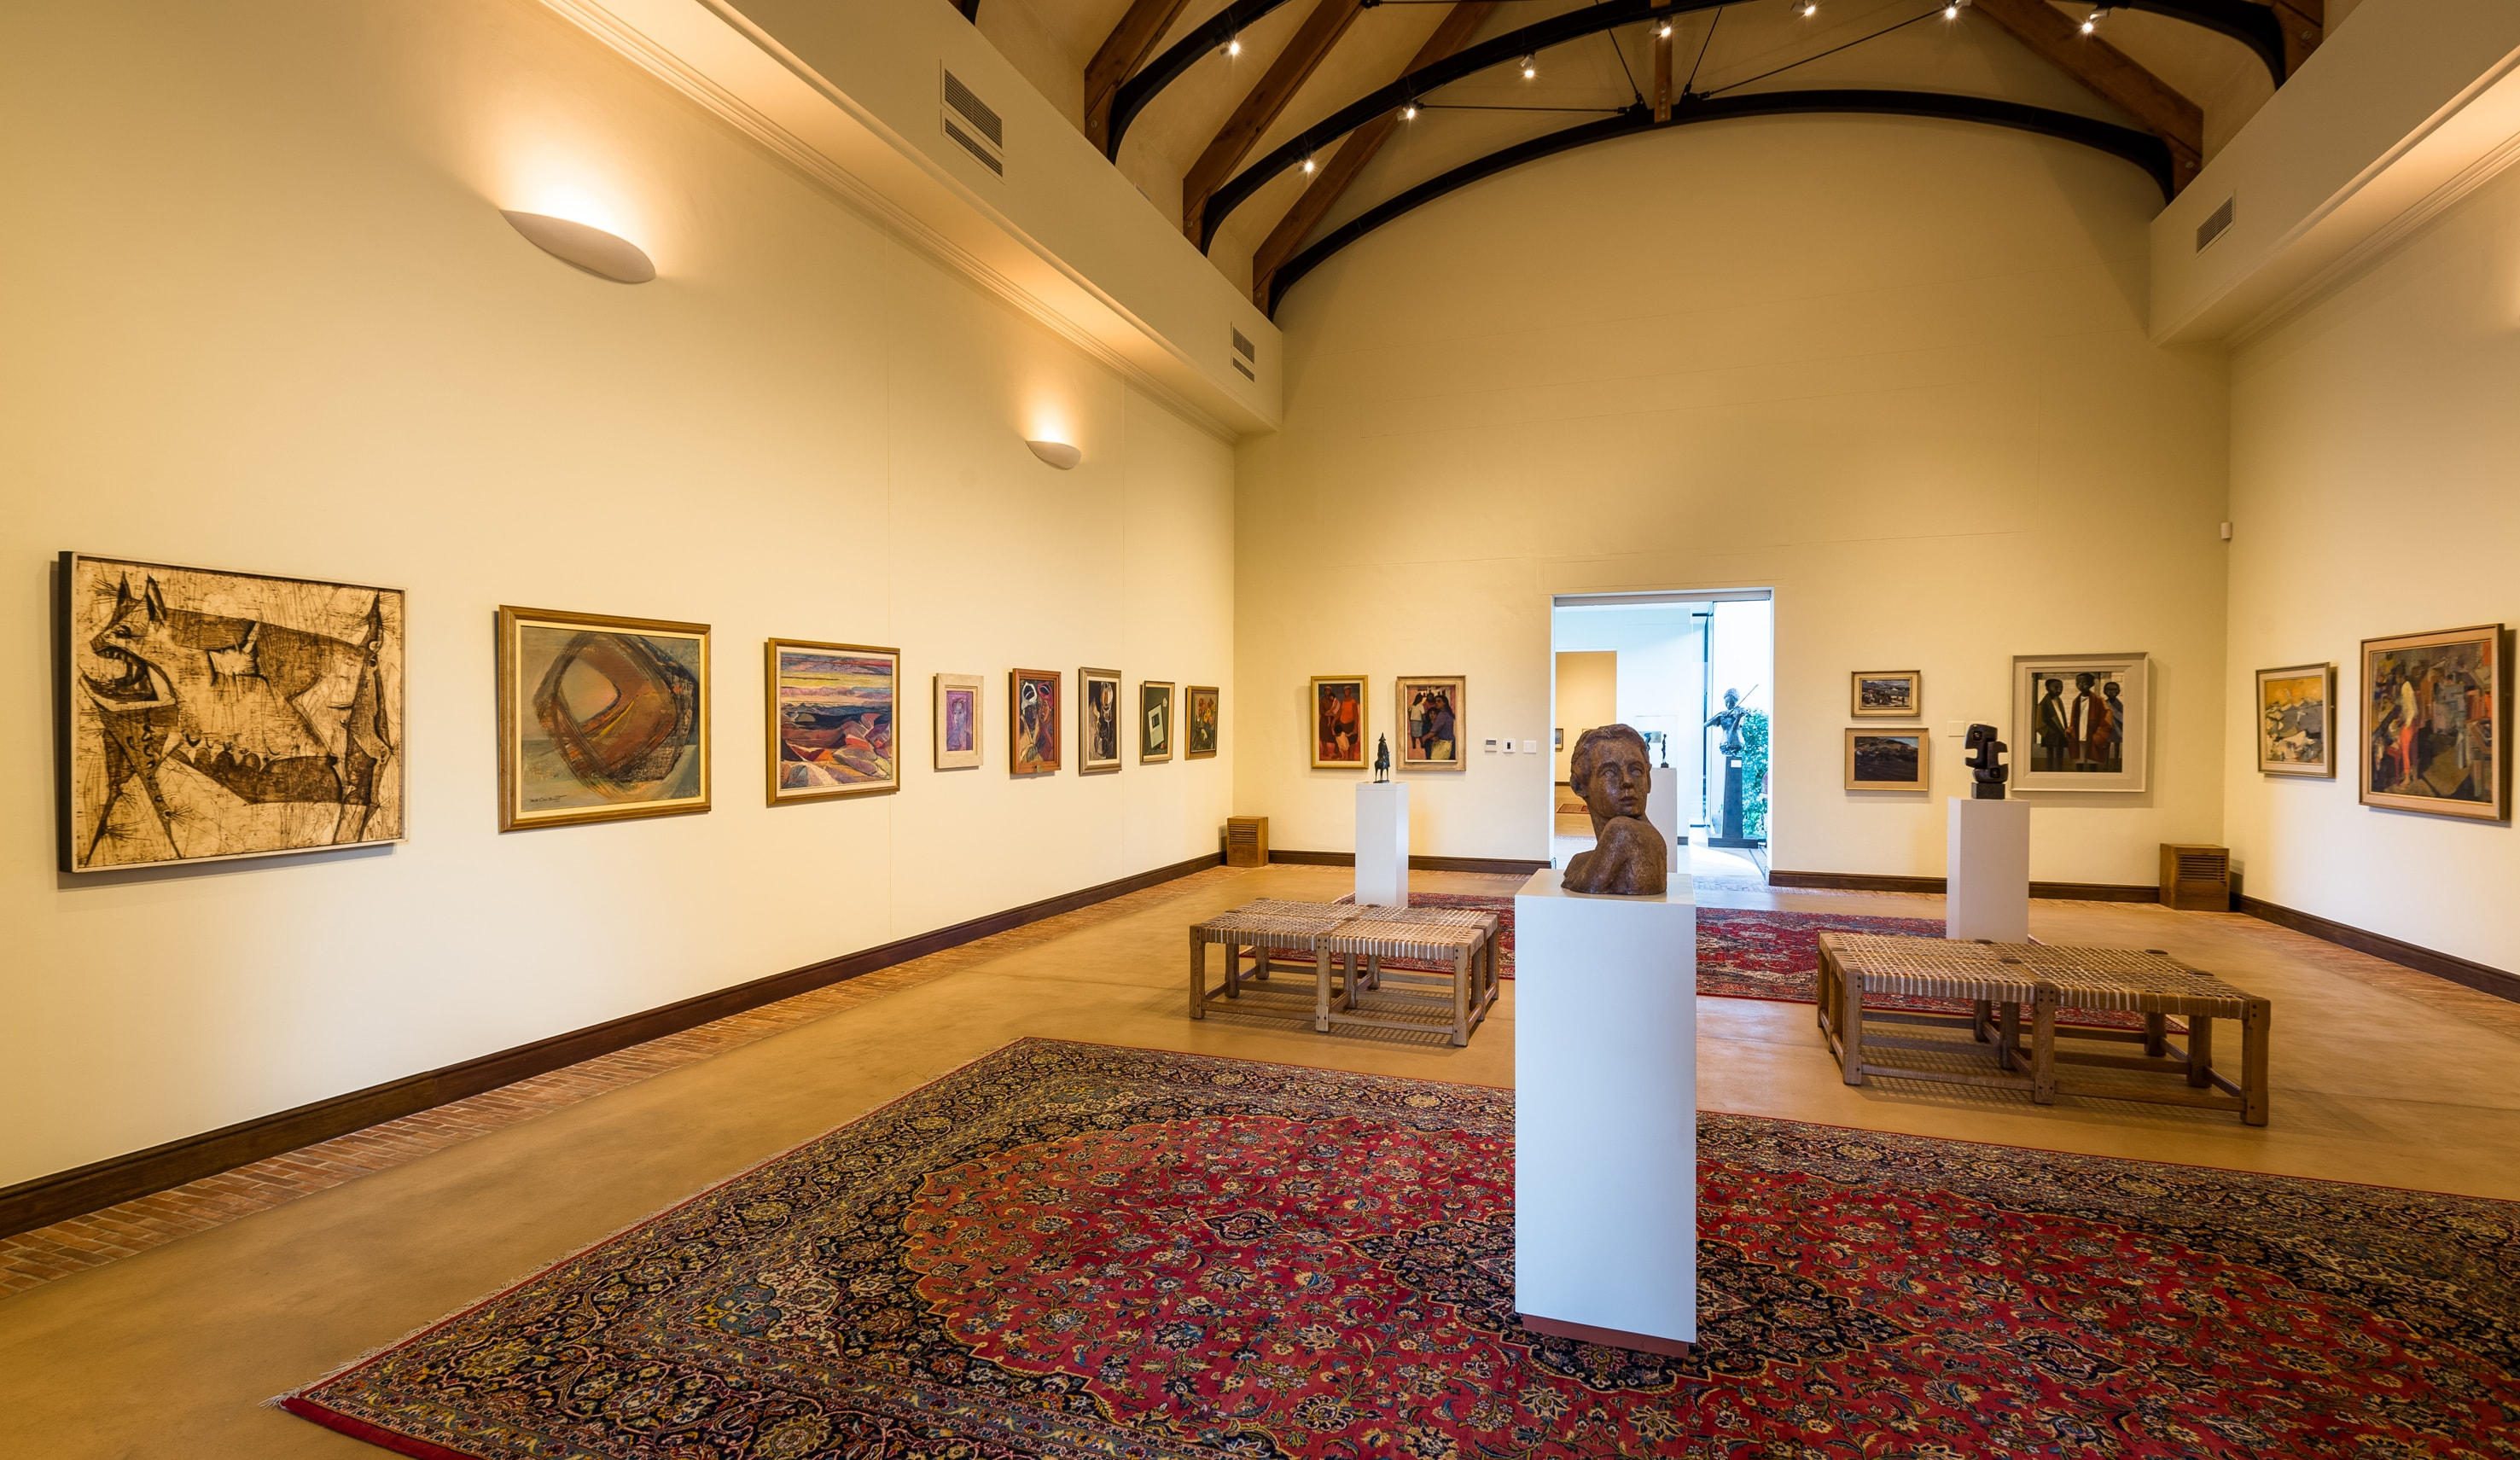 Thoughtful Journey - a celebration of female artists, exhibition view 2-min